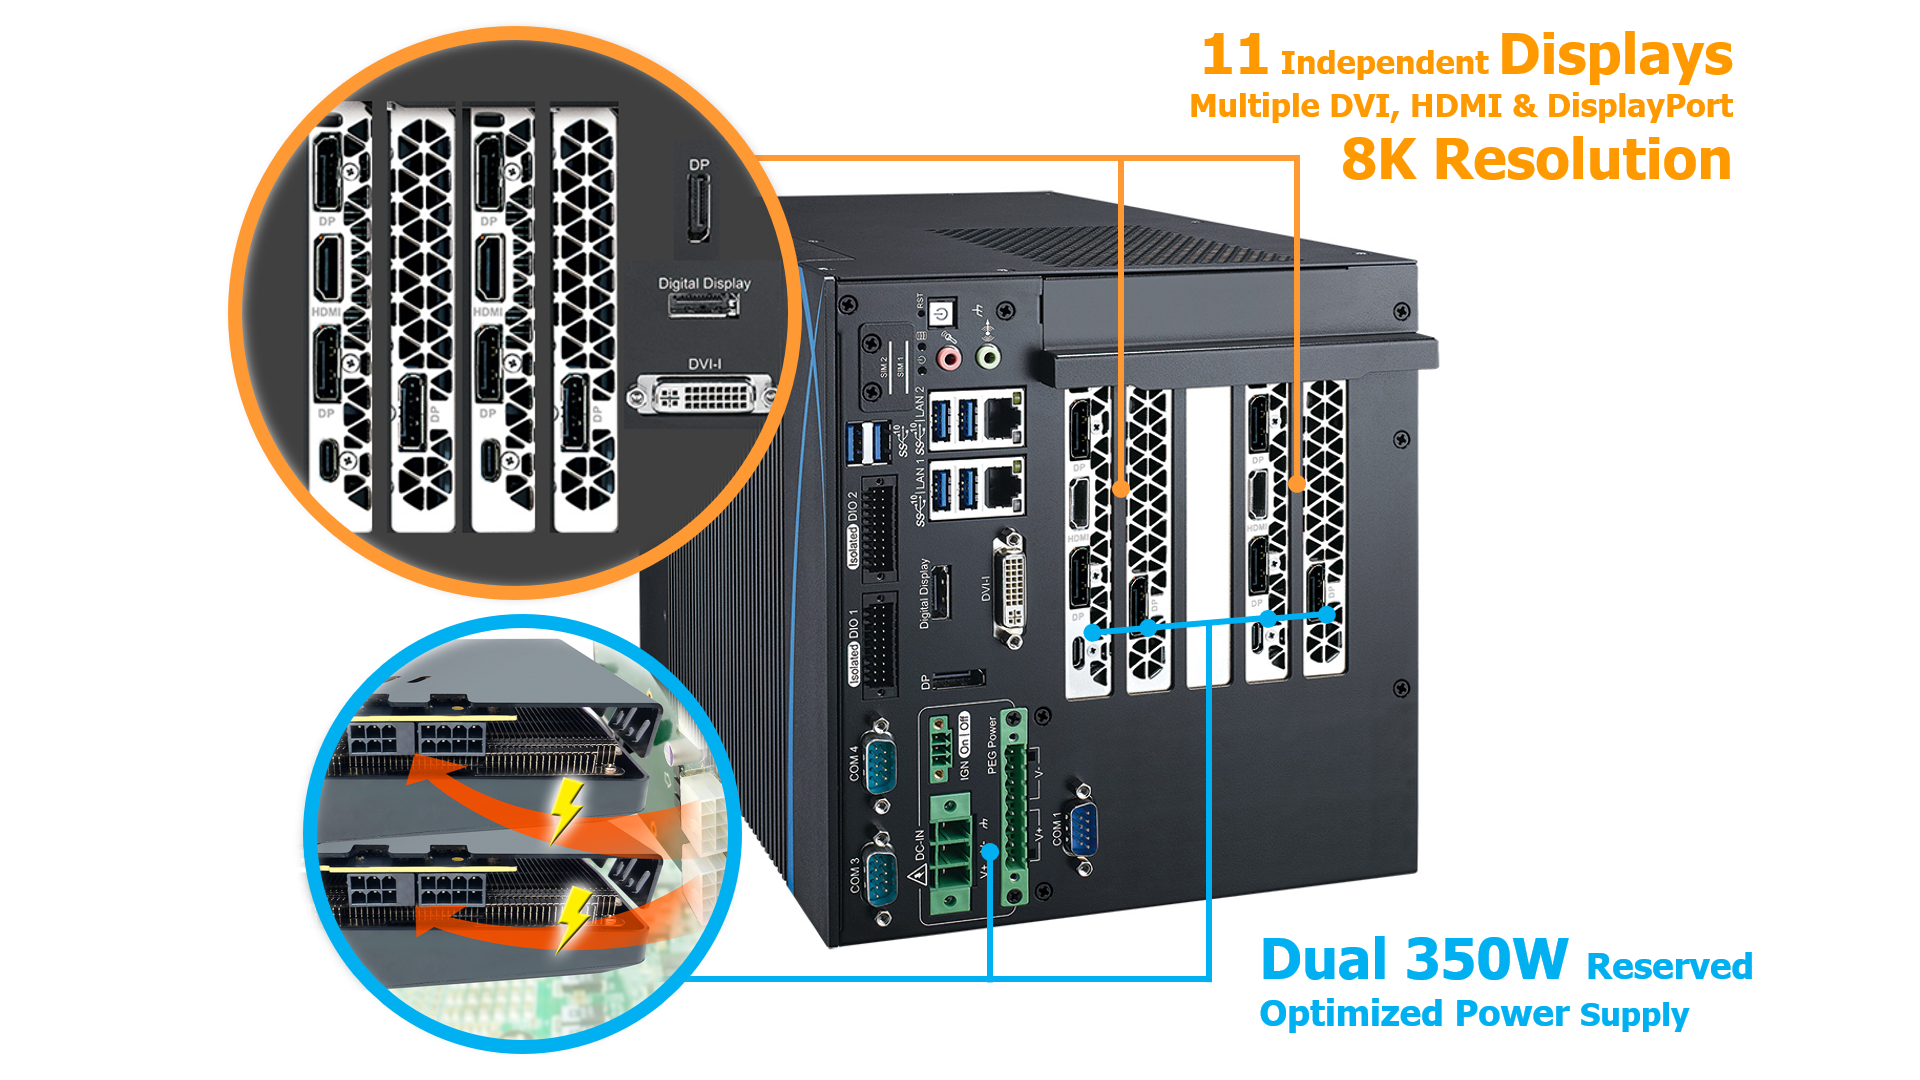 Vecow RCX-1500 PEG delivers leading integrated features